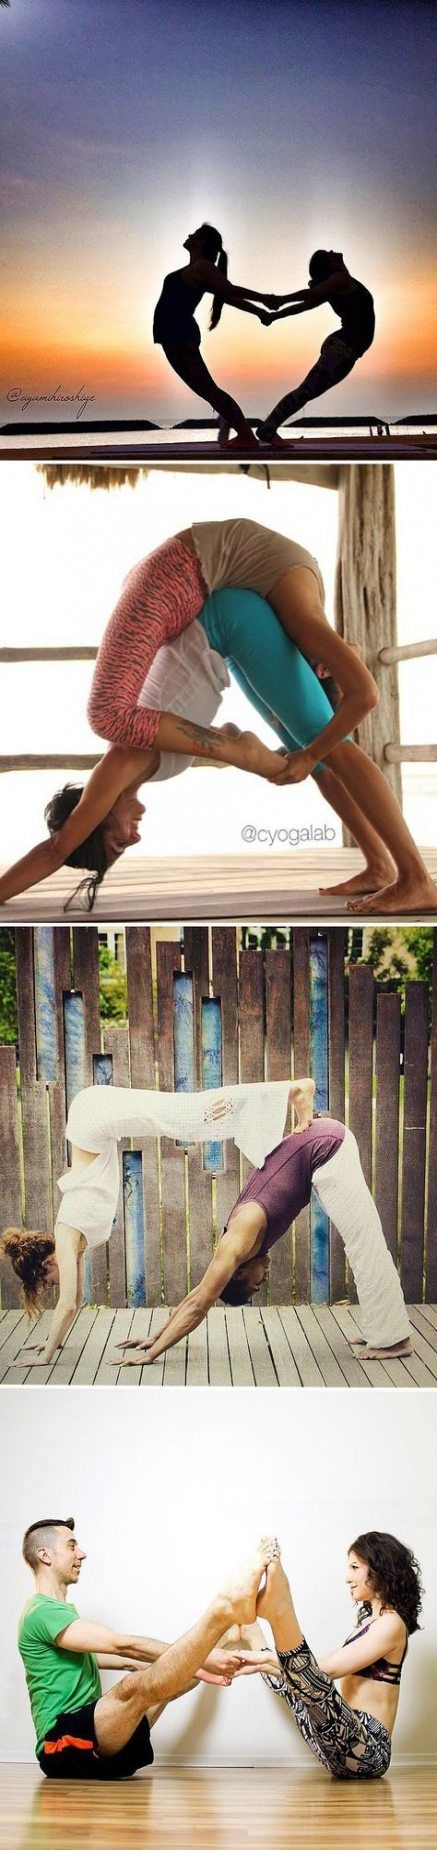 17+  ideas for fitness pictures couples yoga poses #fitness